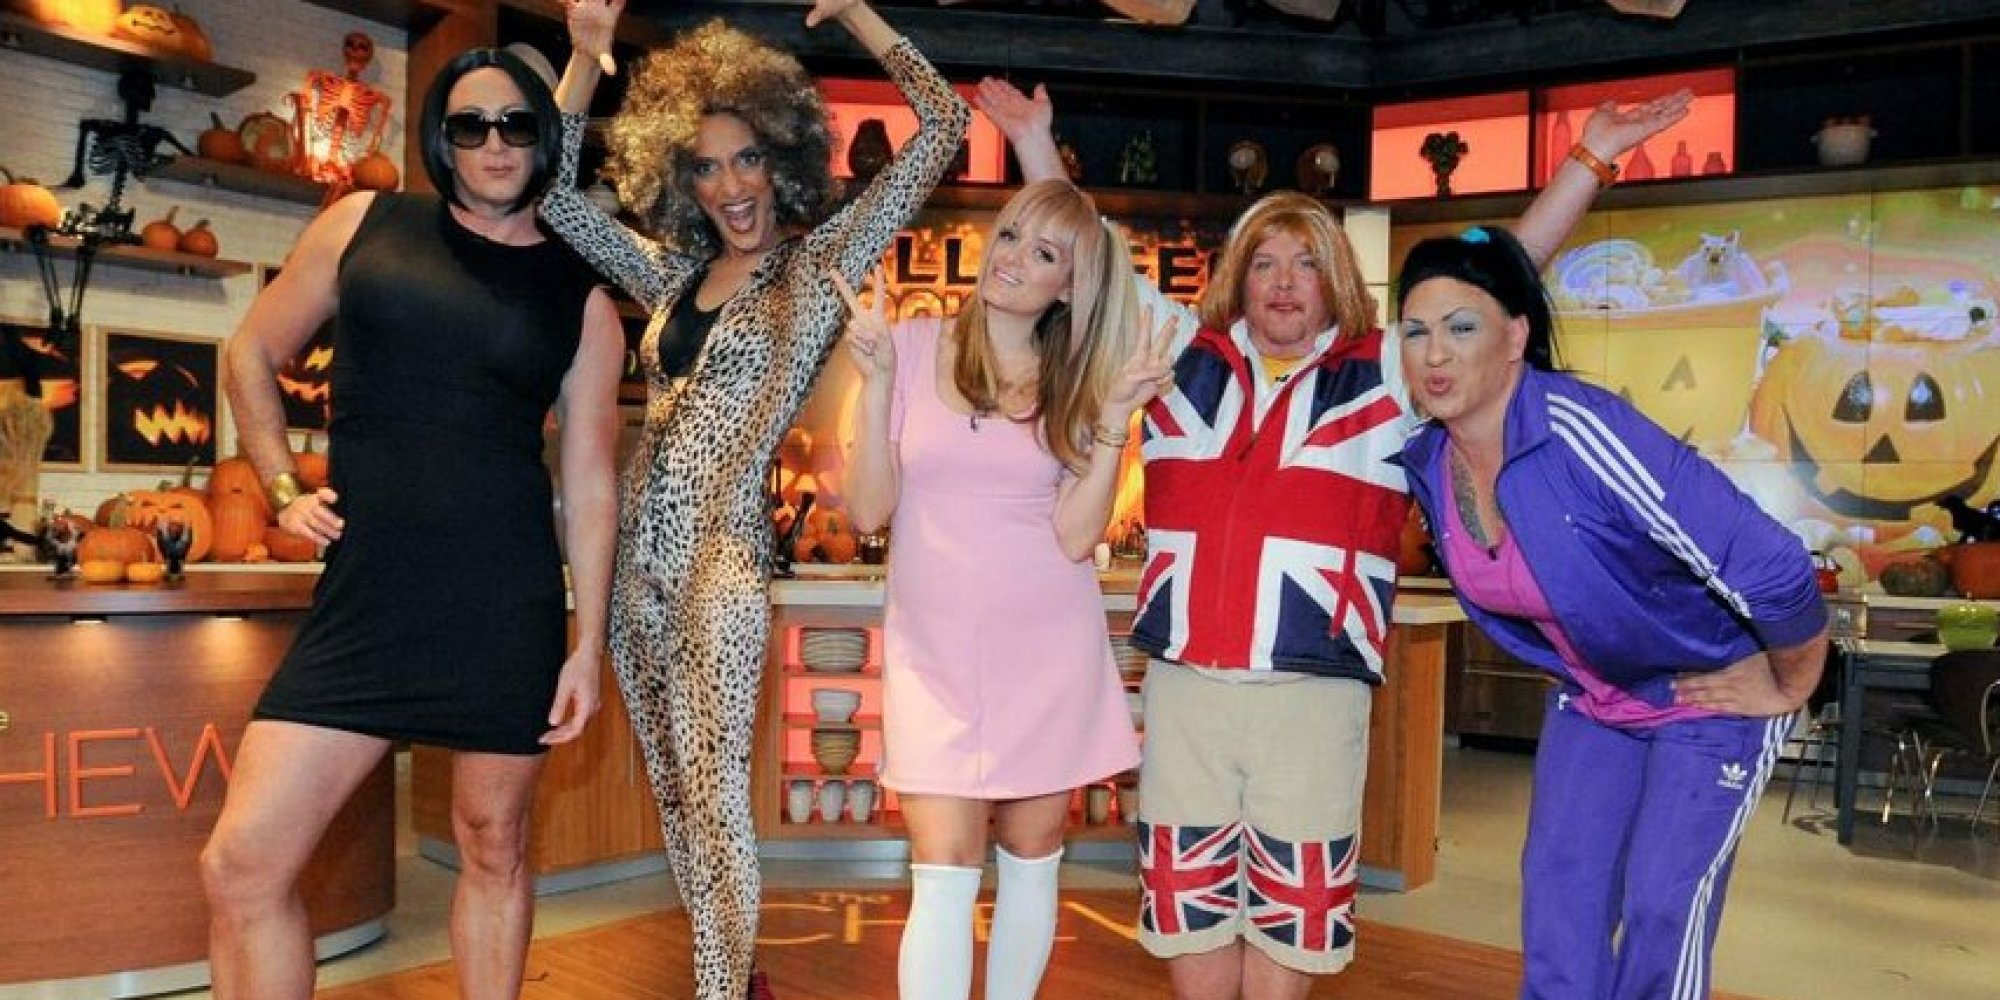 u0027The Chewu0027 Cast Dresses Up As The Spice Girls For Halloween (PHOTOS) | HuffPost  sc 1 st  HuffPost & The Chewu0027 Cast Dresses Up As The Spice Girls For Halloween (PHOTOS ...